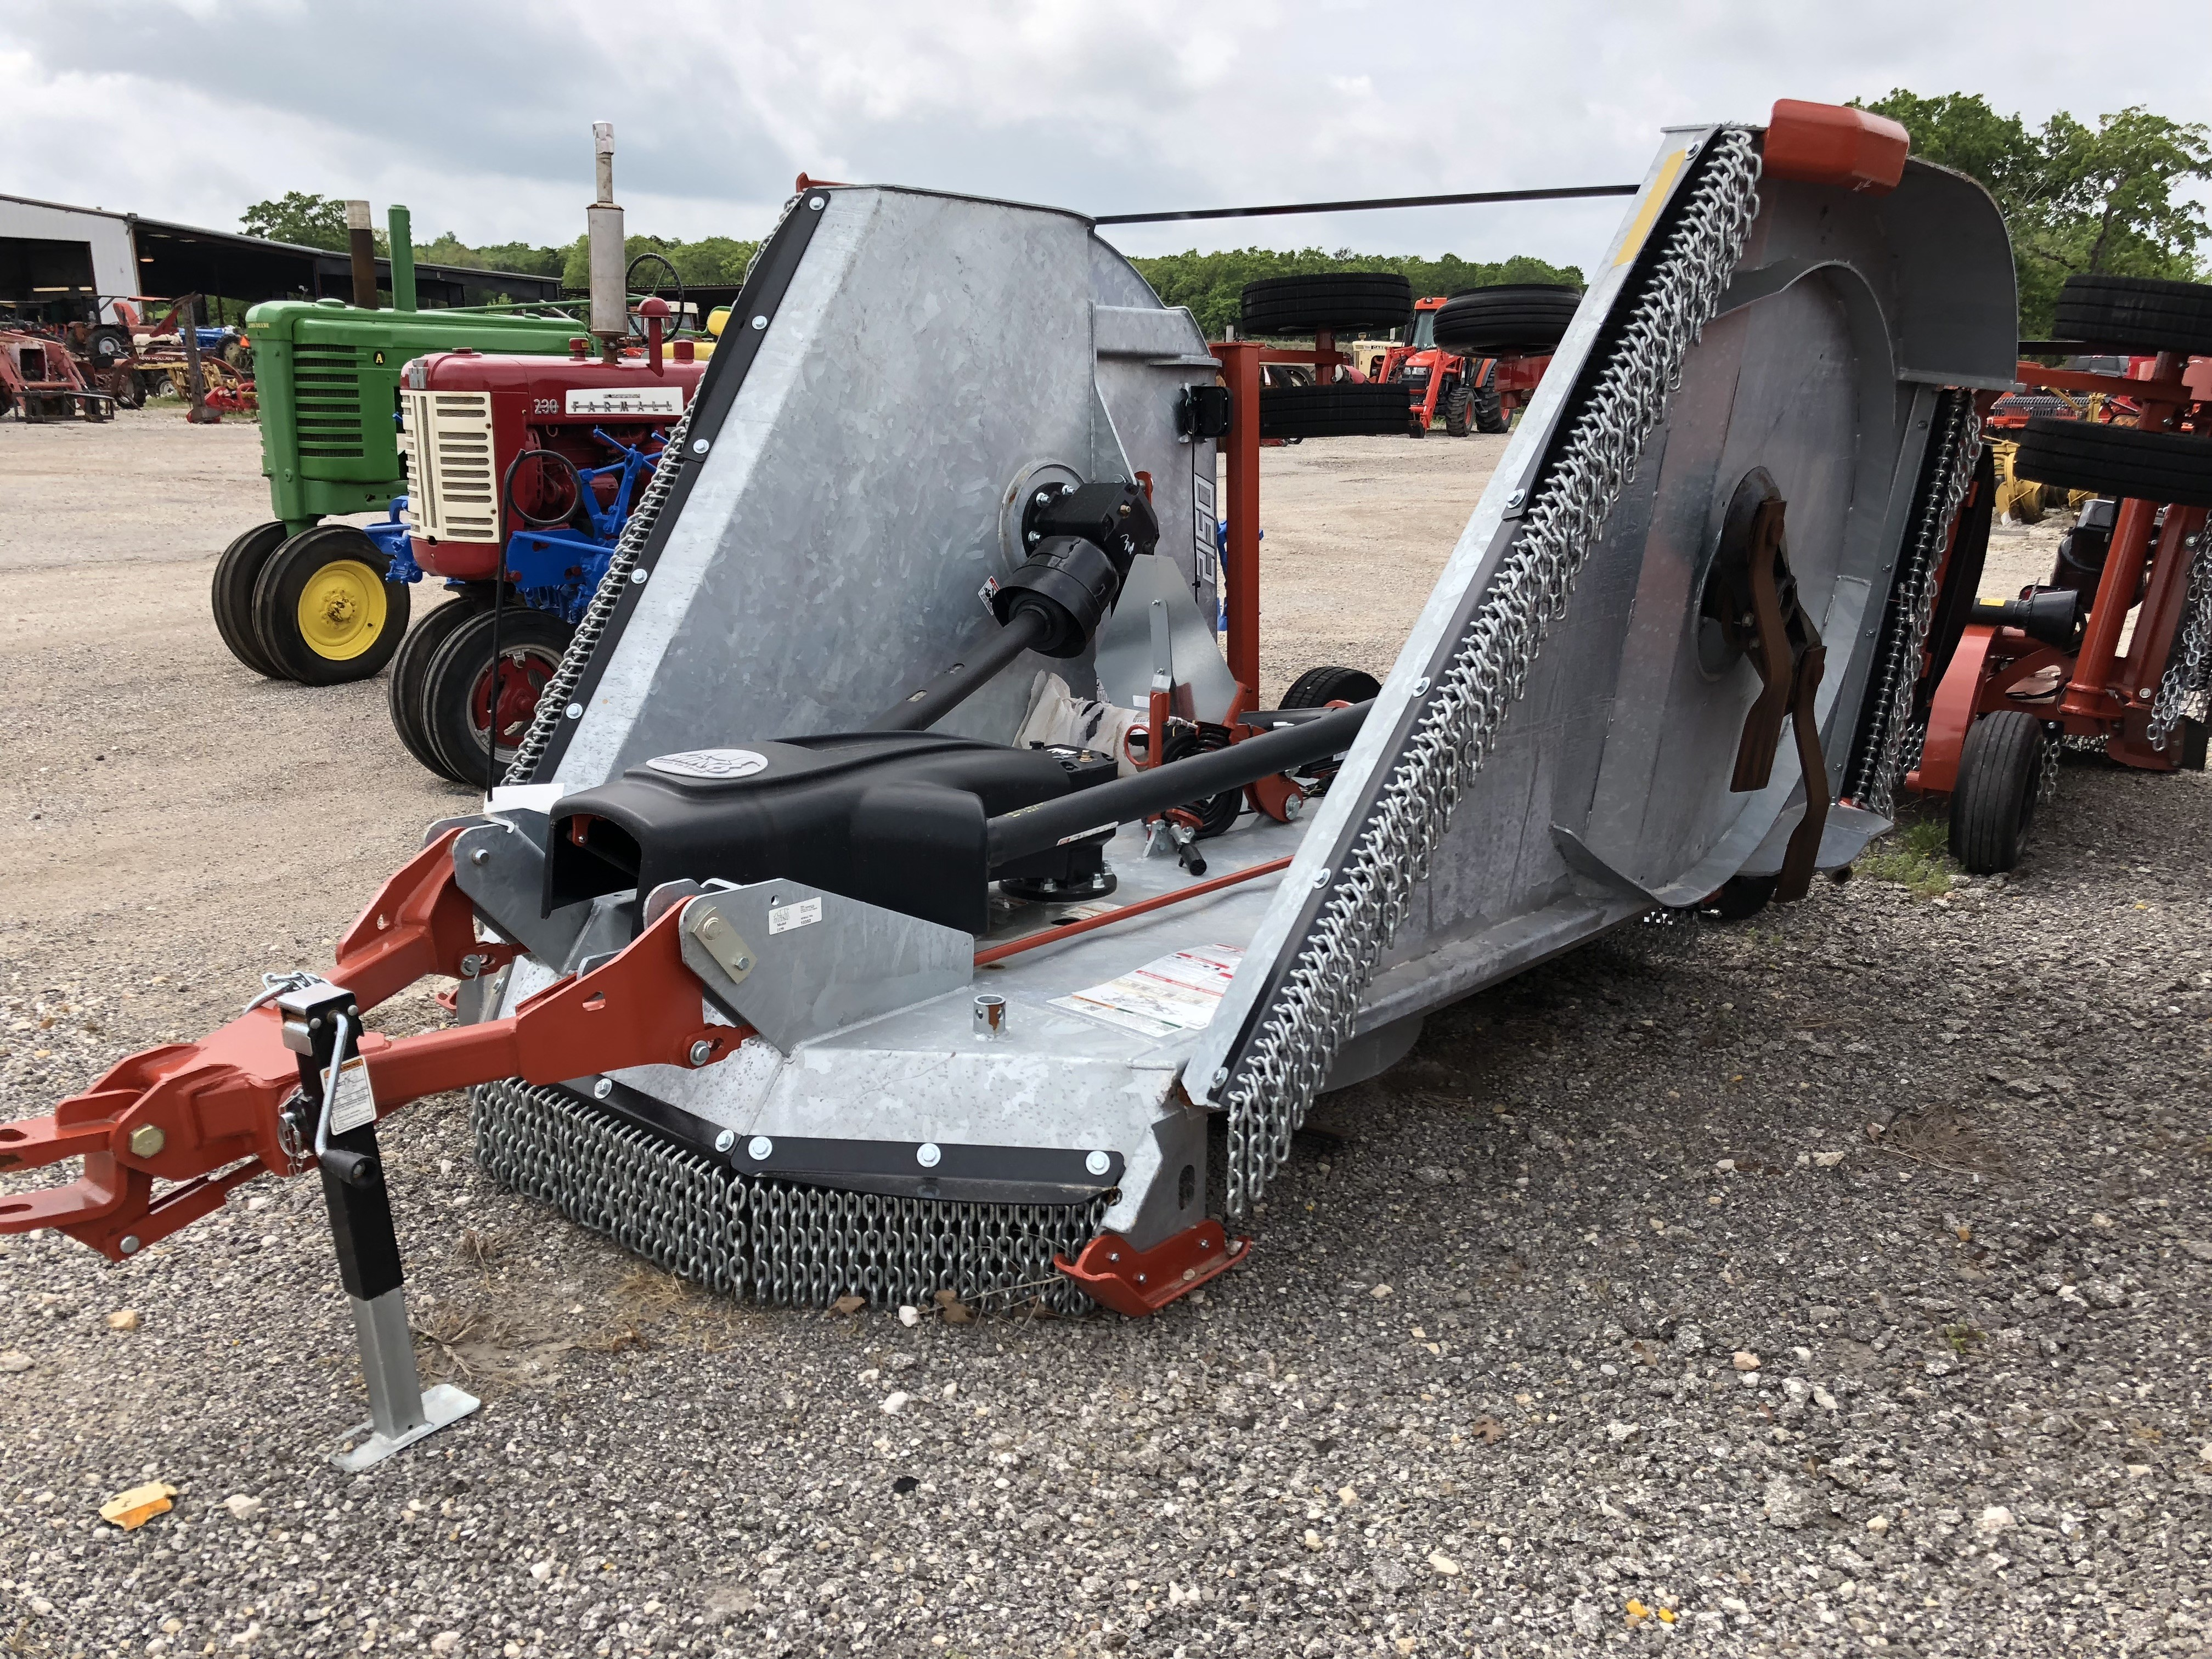 New Rhino 15ft Batwing rotary cutters / shredders in Paige, TX